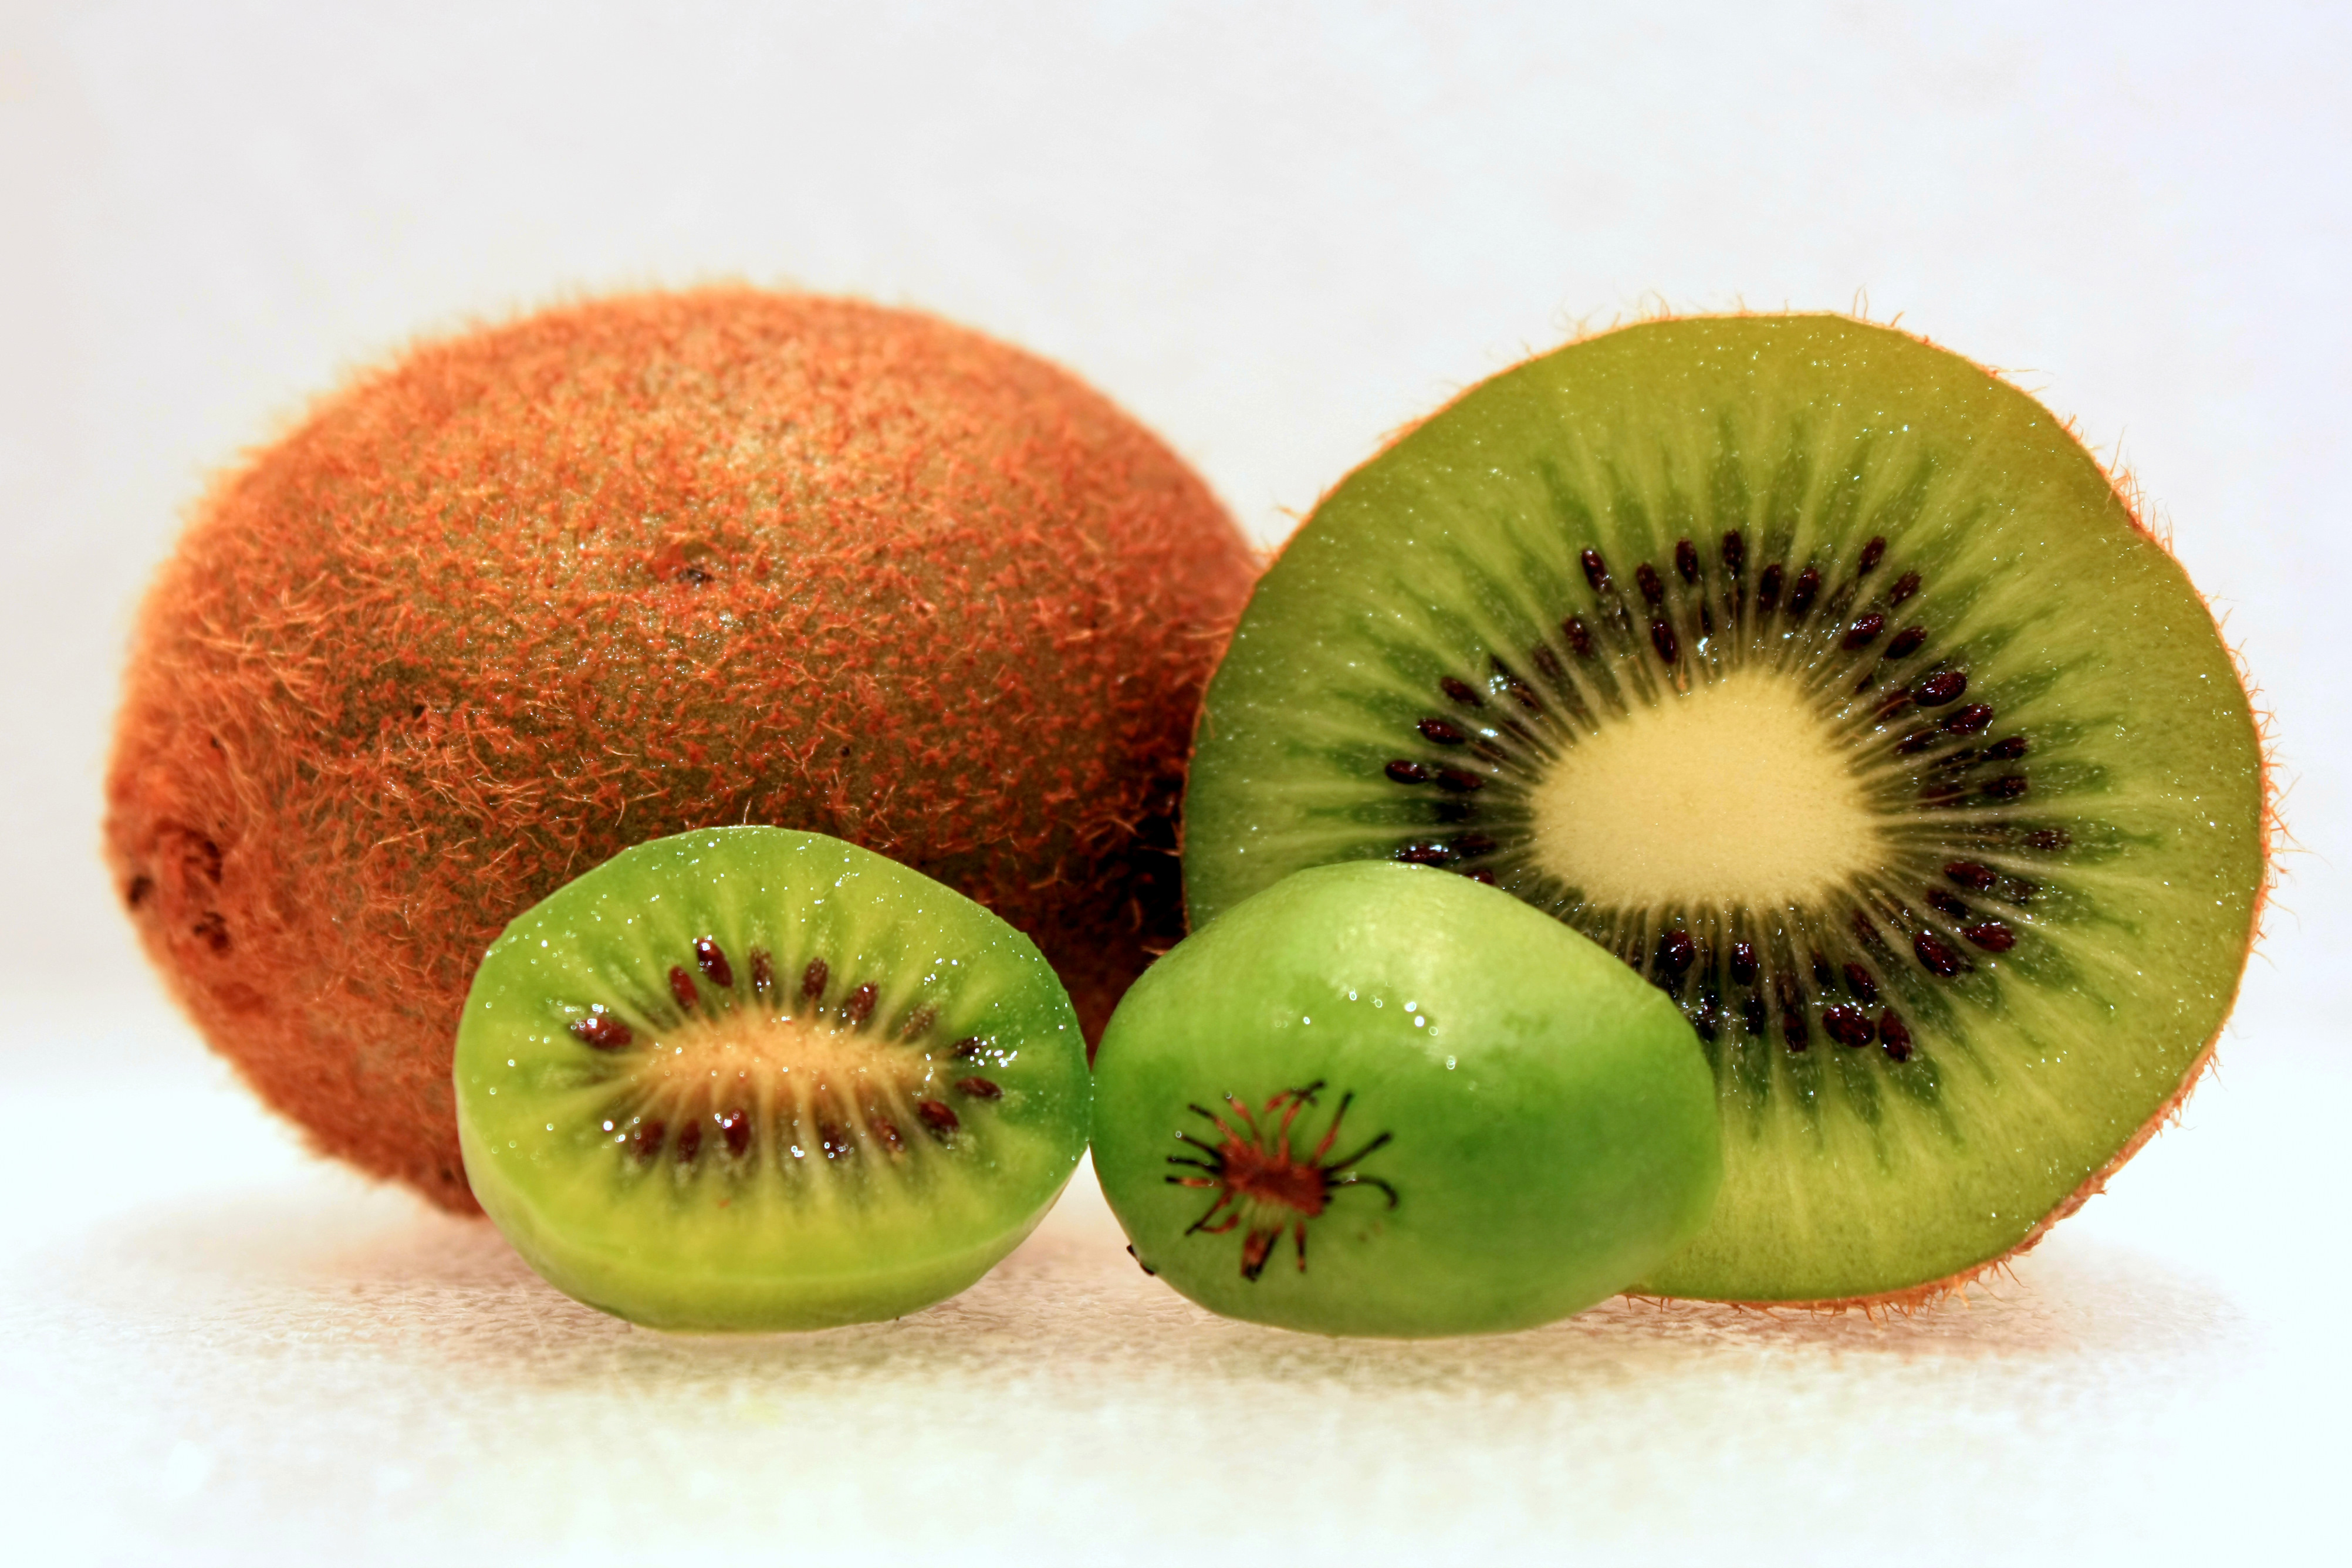 The larger fuzzy kiwifruit at rear compared to the smaller kiwi berry (hardy kiwifruit). Photo taken on March 15, 2010.